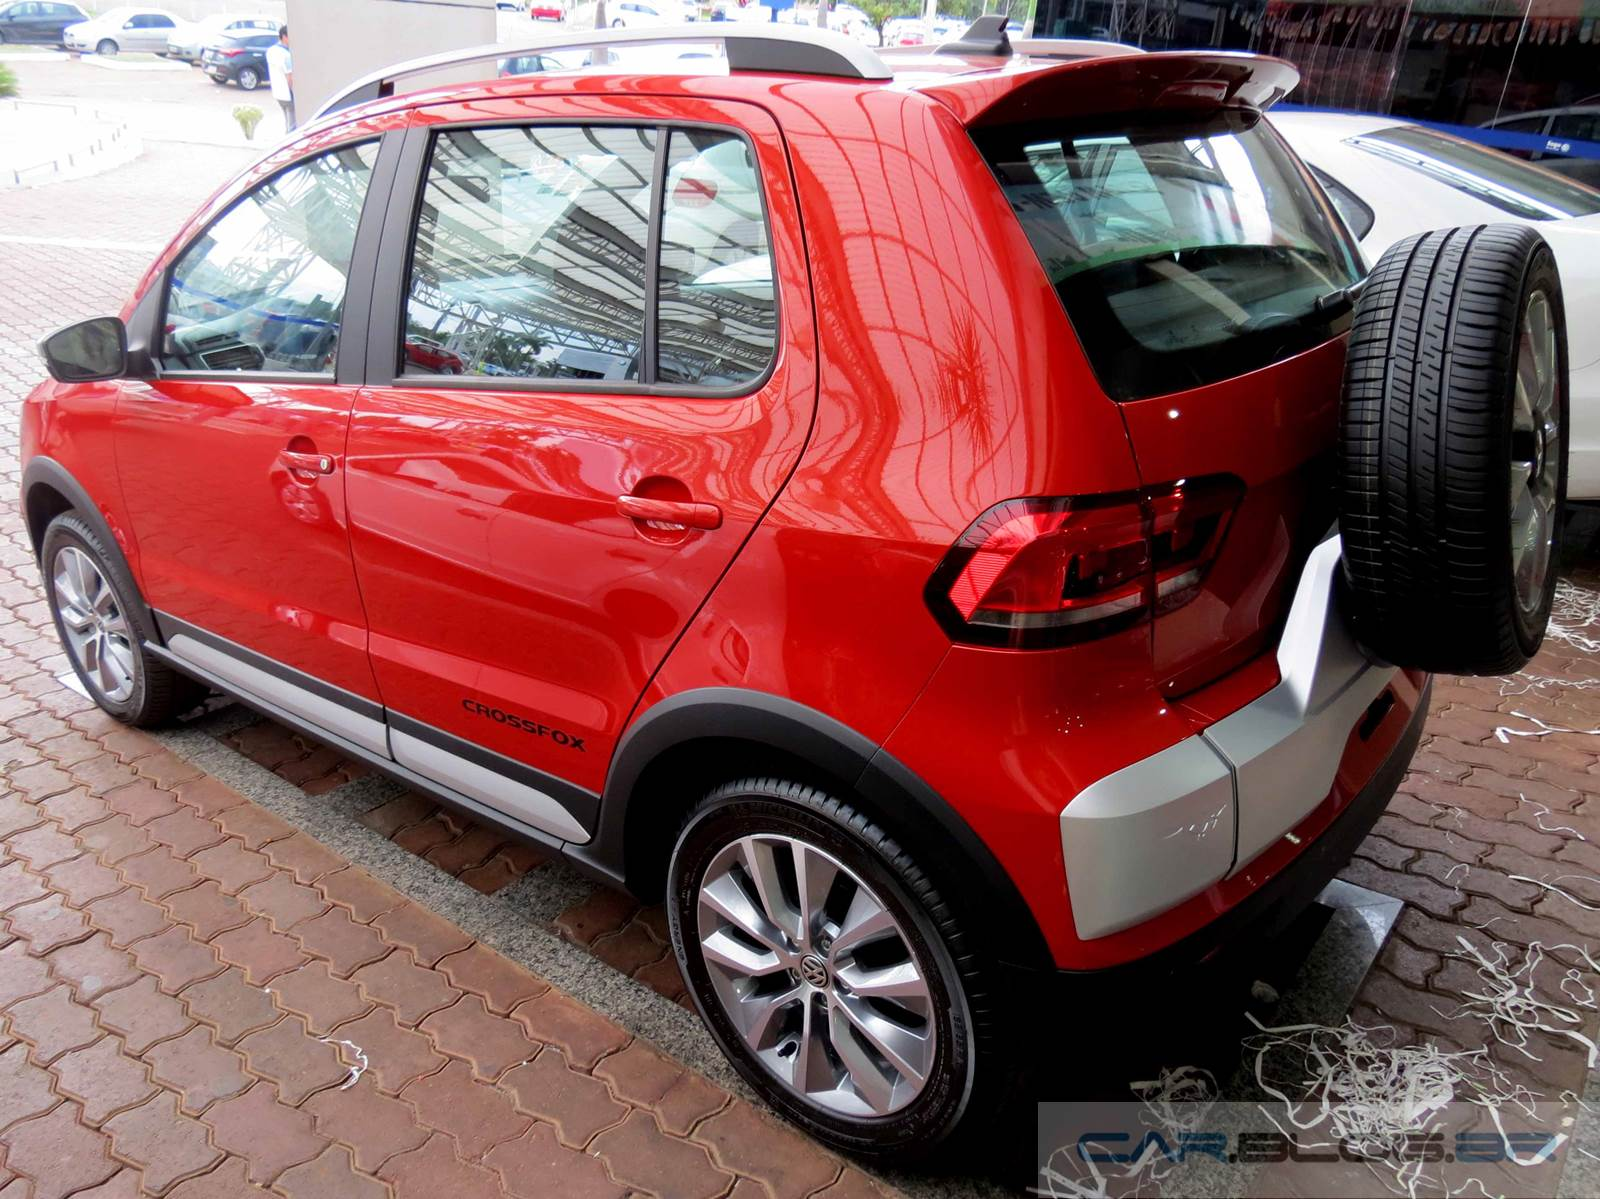 Novo VW CrossFox - fotos e vídeo do carro em autorizada | CAR.BLOG.BR